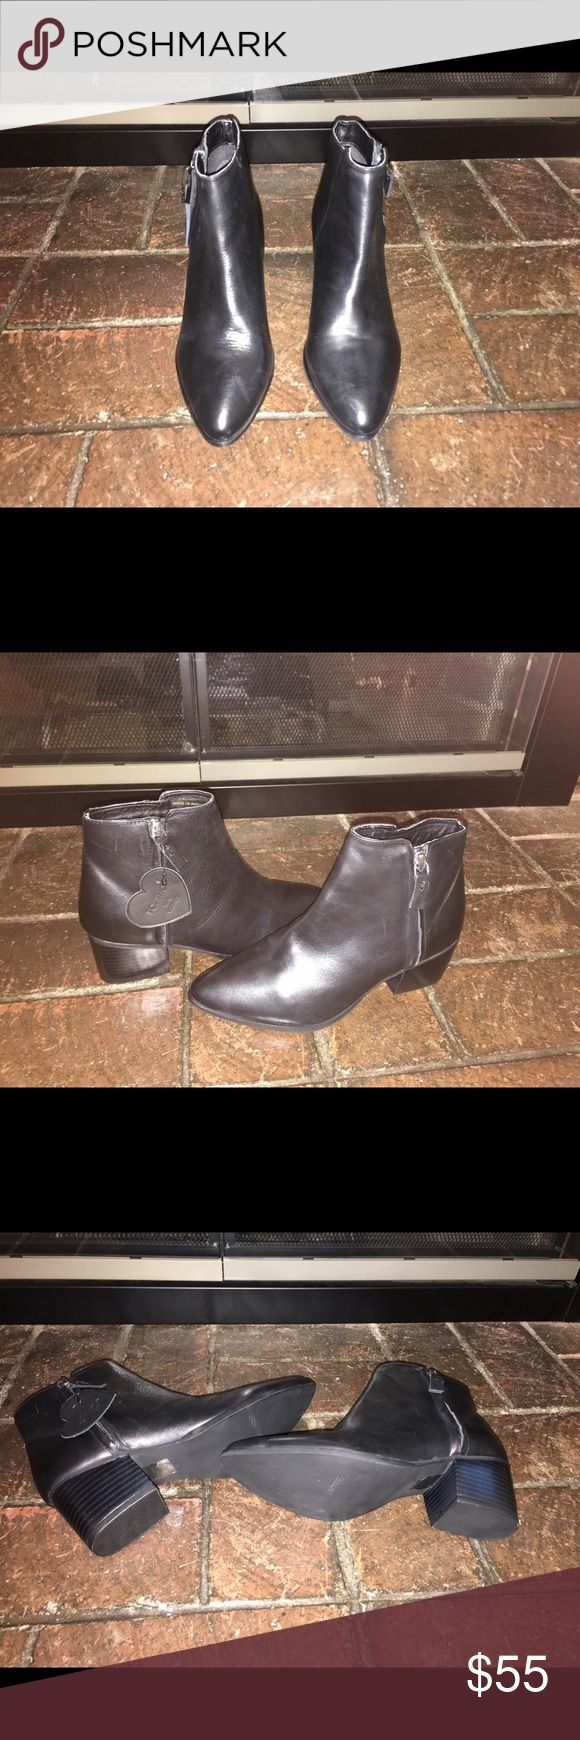 "Topshop Black ""Bardot"" Side Zip Boot These are brand new and a perfect classic minimalist black boot with a 2"" heel and pointed toe. Topshop Shoes Heeled Boots"